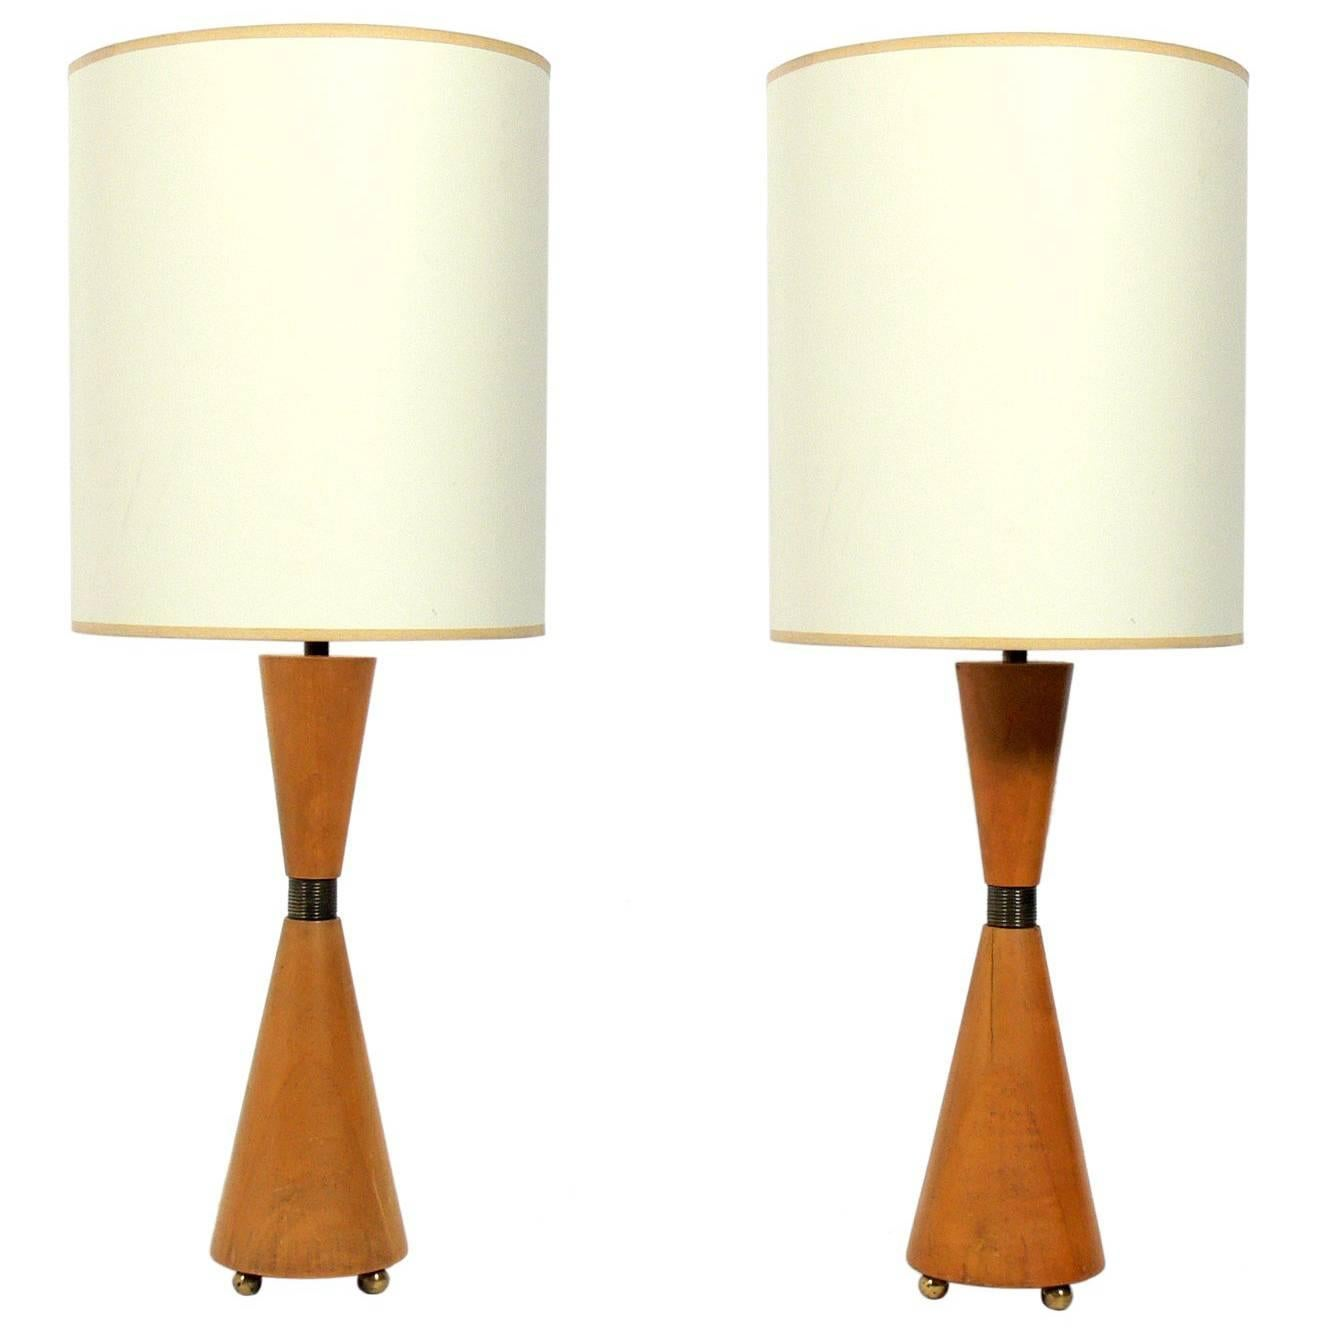 Pair of Hourglass Form Wood and Brass Lamps